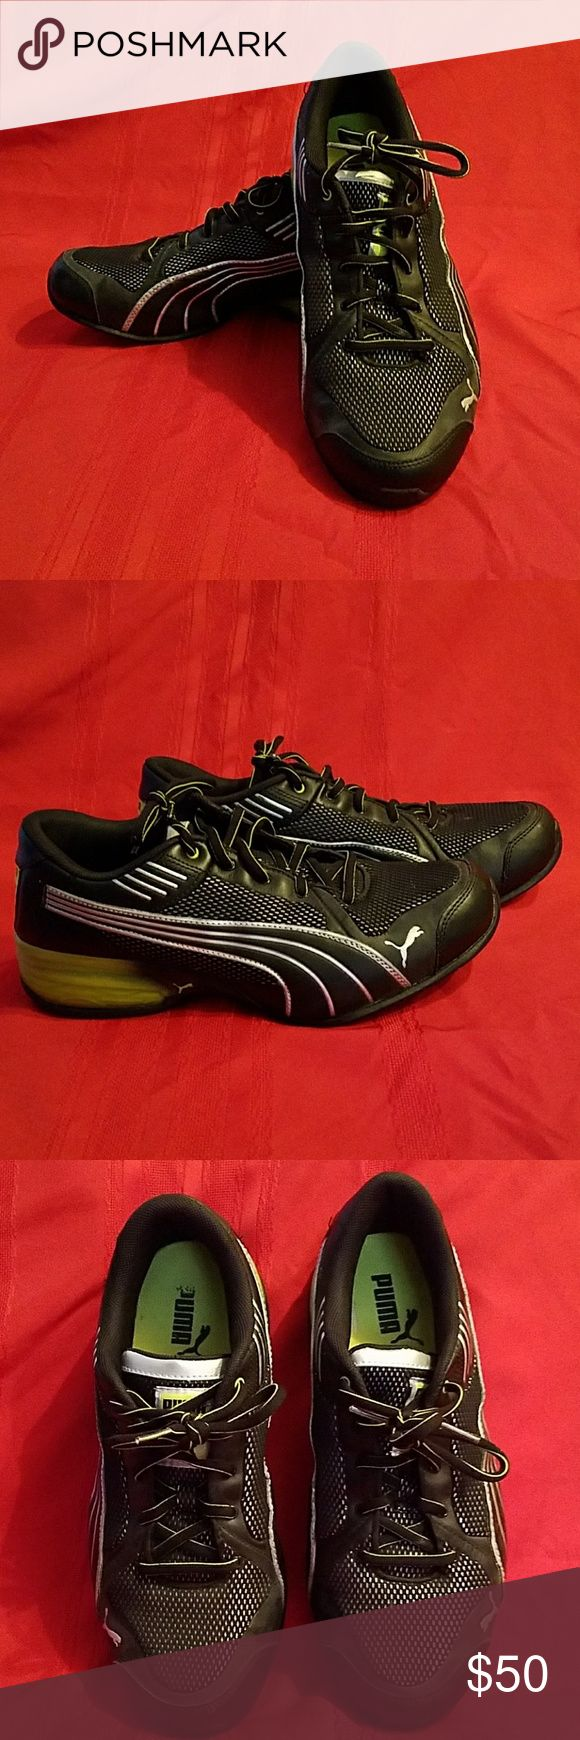 Puma running Black/Green Men's Puma running shoes in black with green & silver accents.  Only worn a couple times. Puma Shoes Sneakers